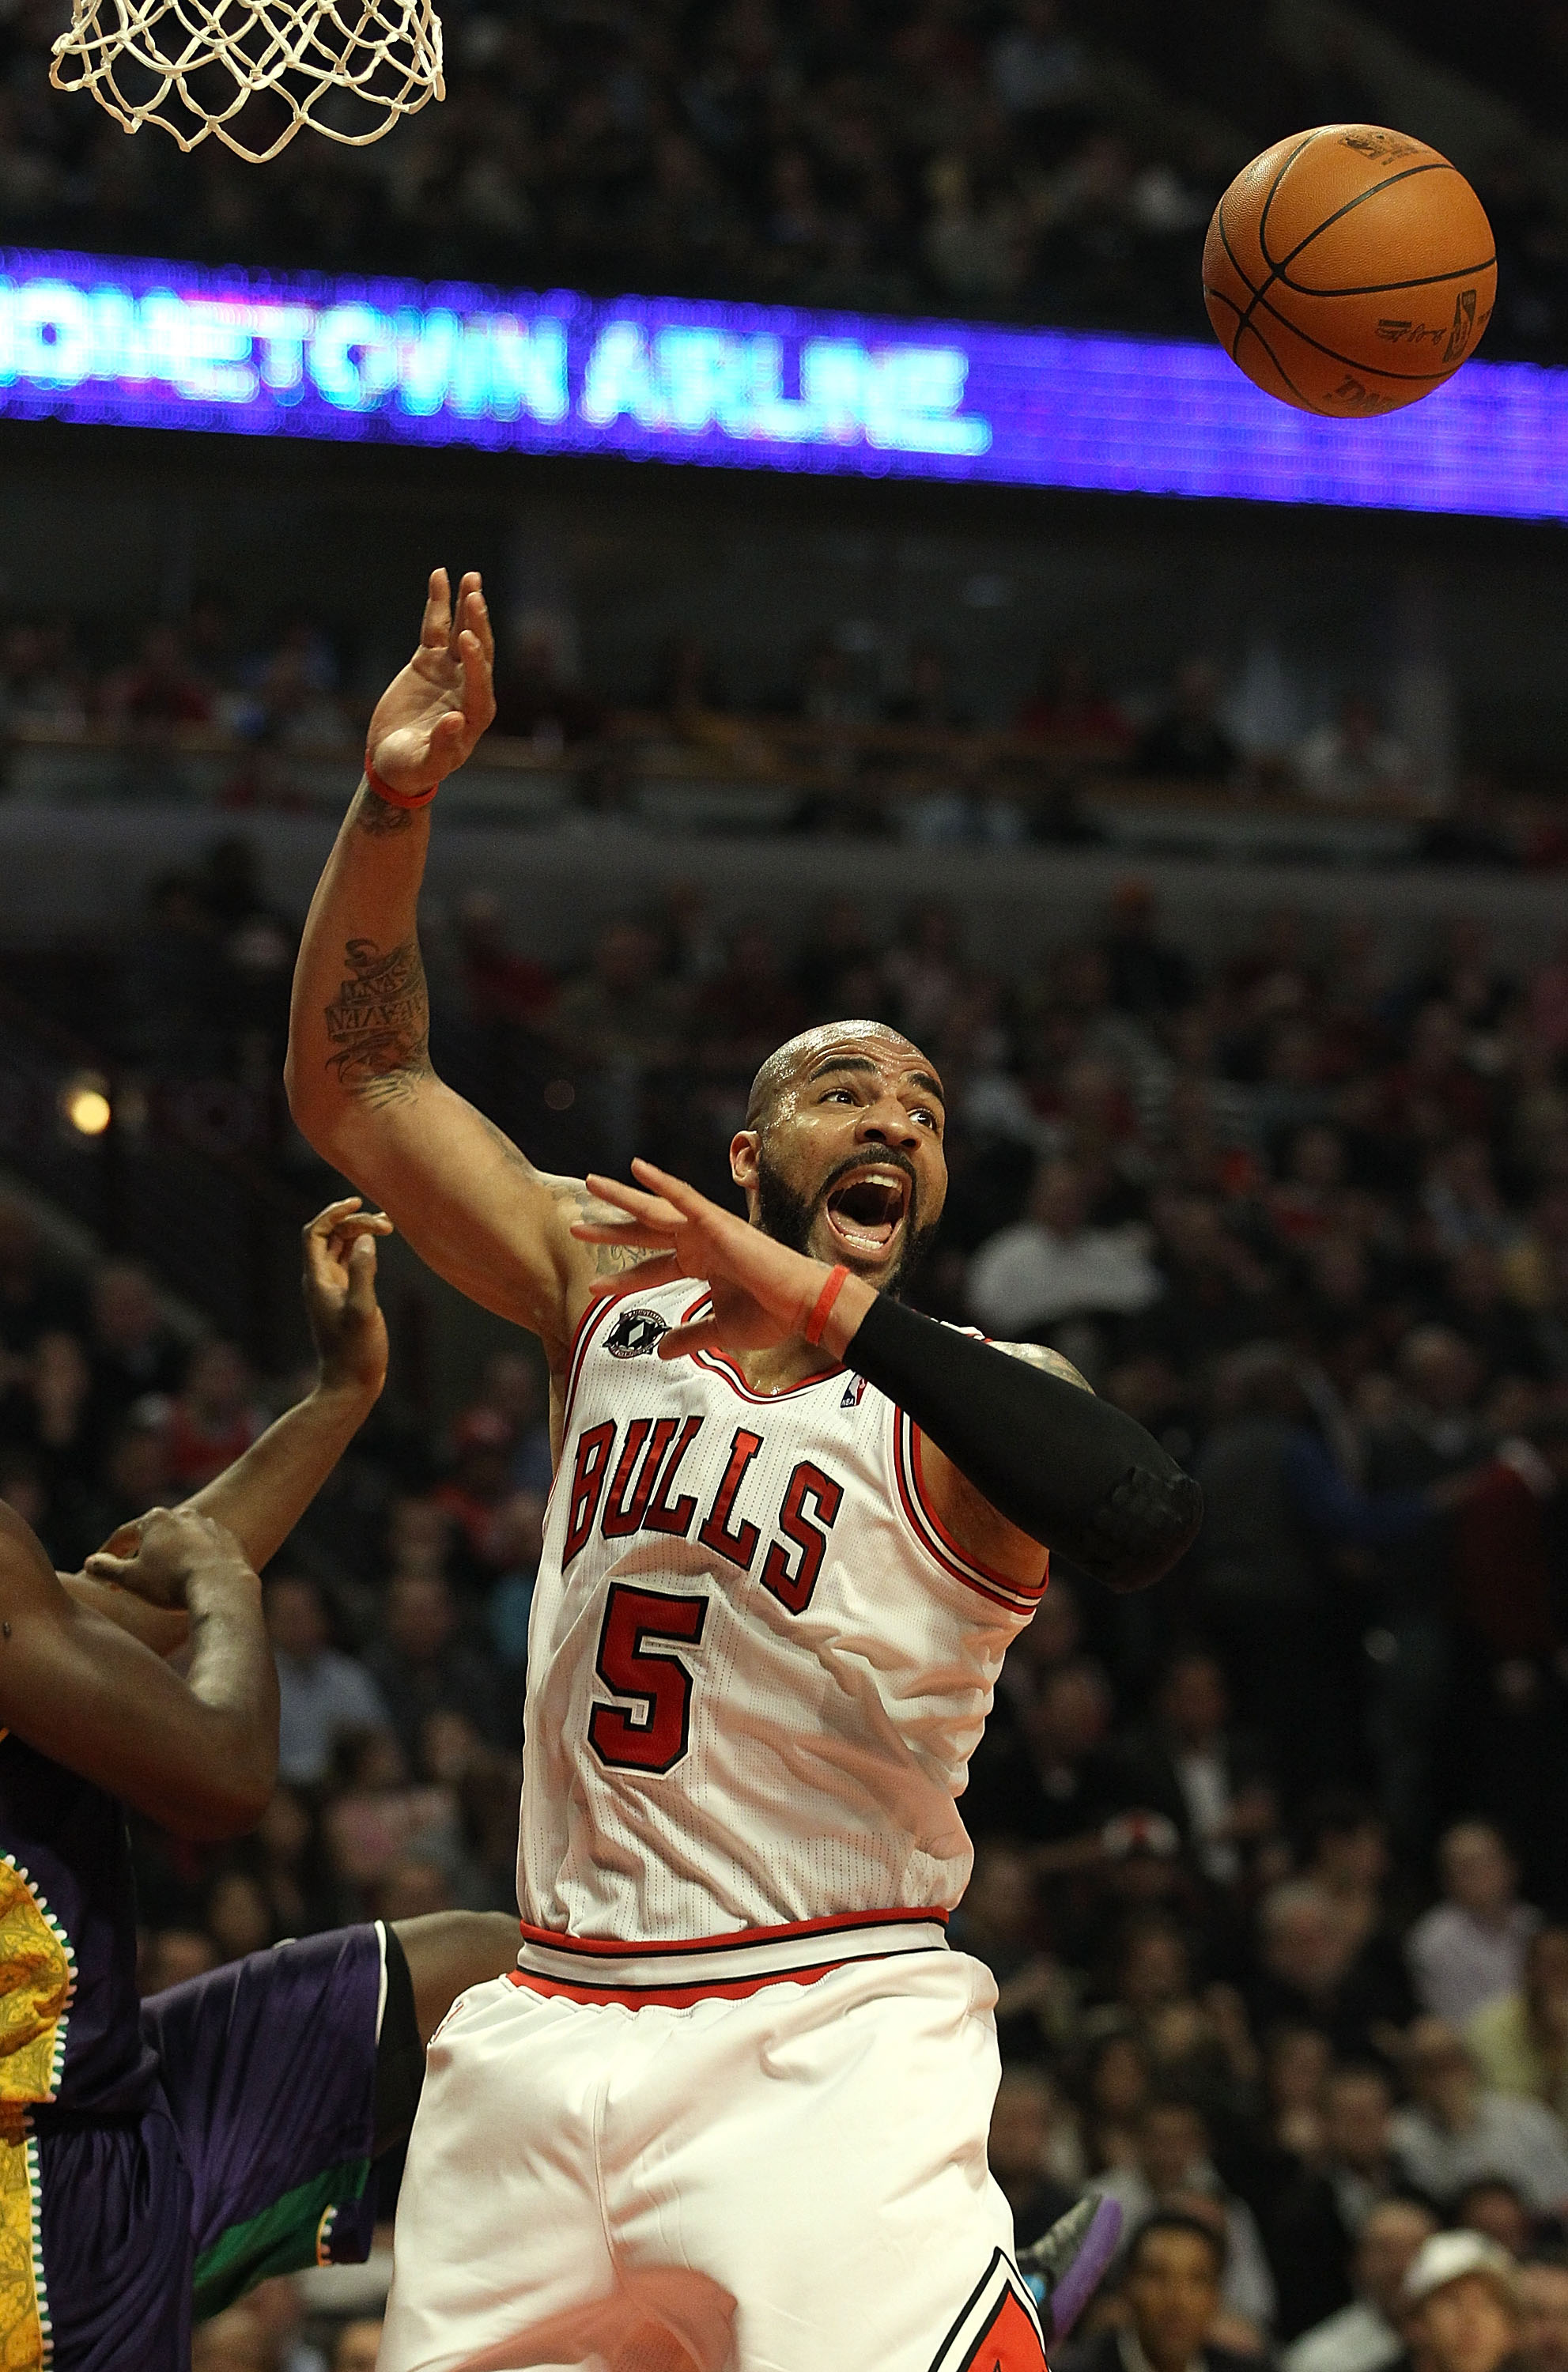 CHICAGO, IL - MARCH 07: Carlos Boozer #5 of the Chicago Bulls looses the ball after grabbing a rebound against the New Orleans Hornets at the United Center on March 7, 2011 in Chicago, Illinois. The Bulls defeated the Hornets 85-77. NOTE TO USER: User exp